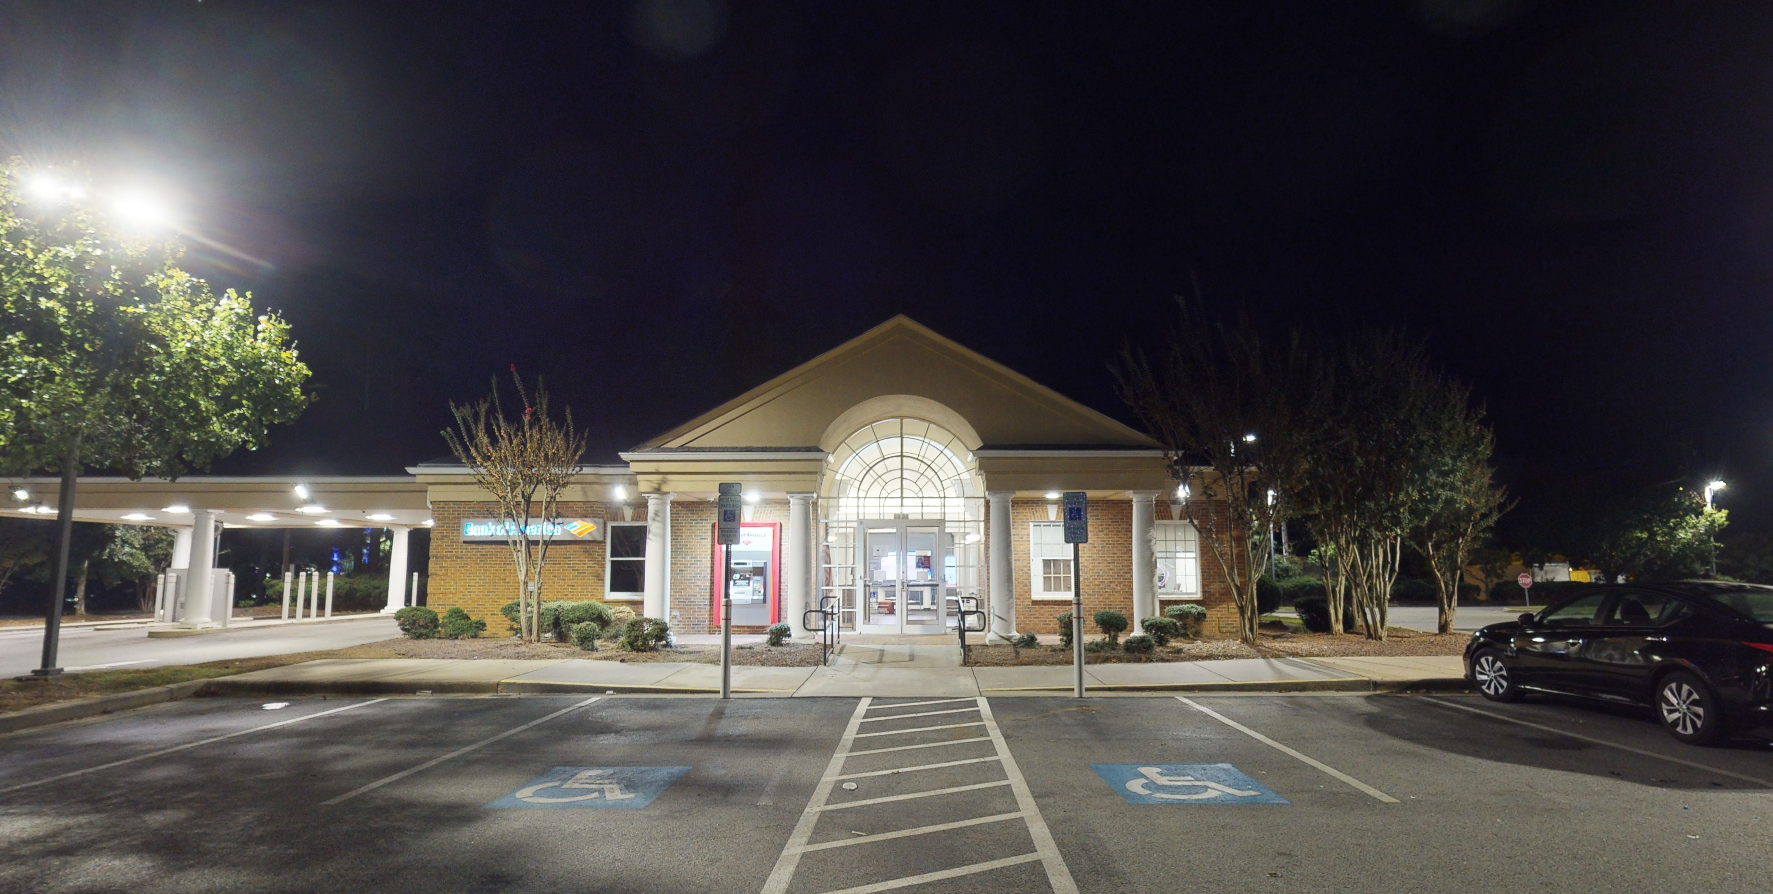 Bank of America financial center with drive-thru ATM and teller | 5559 Sunset Blvd, Lexington, SC 29072